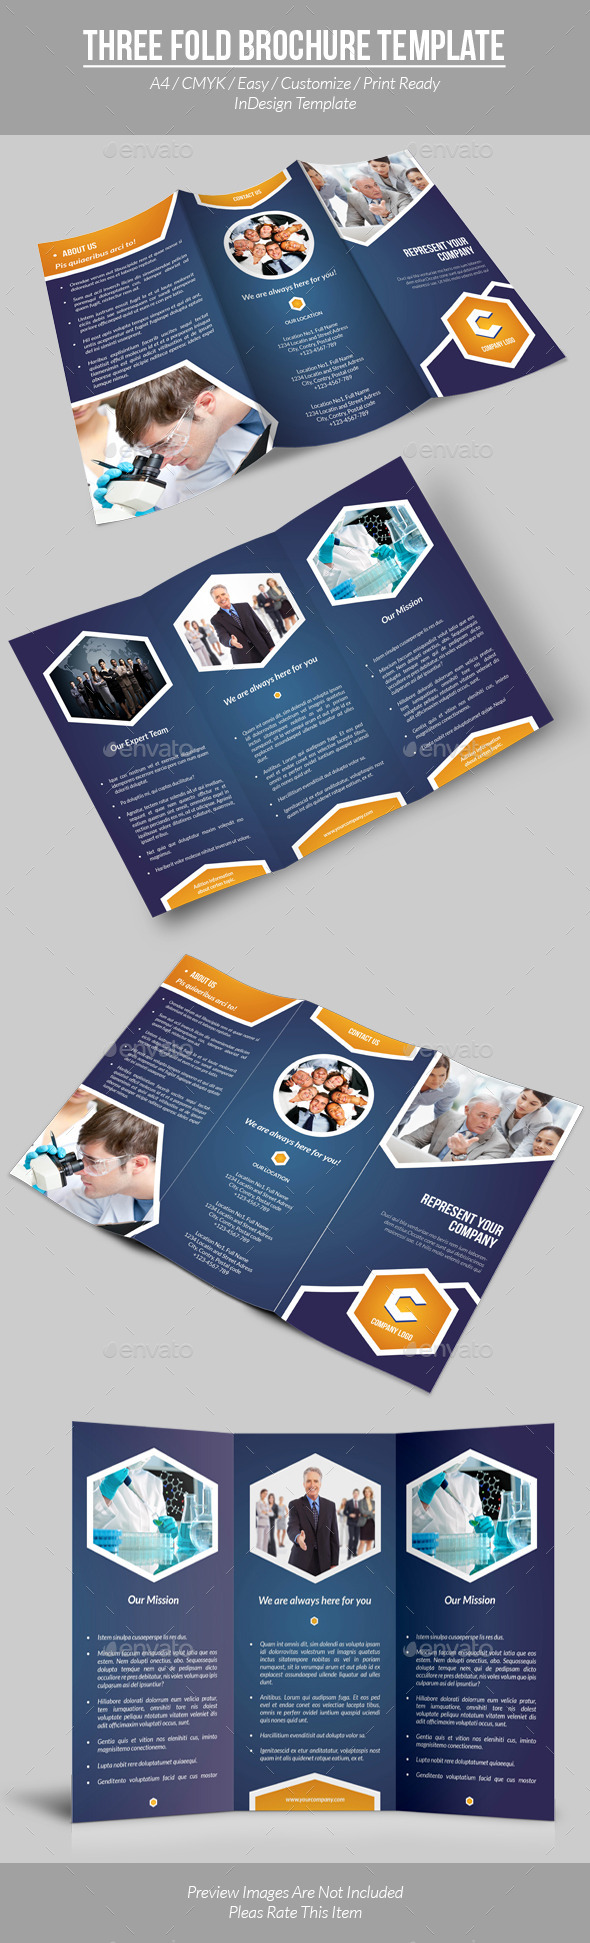 Three Fold Brochure Template - Informational Brochures